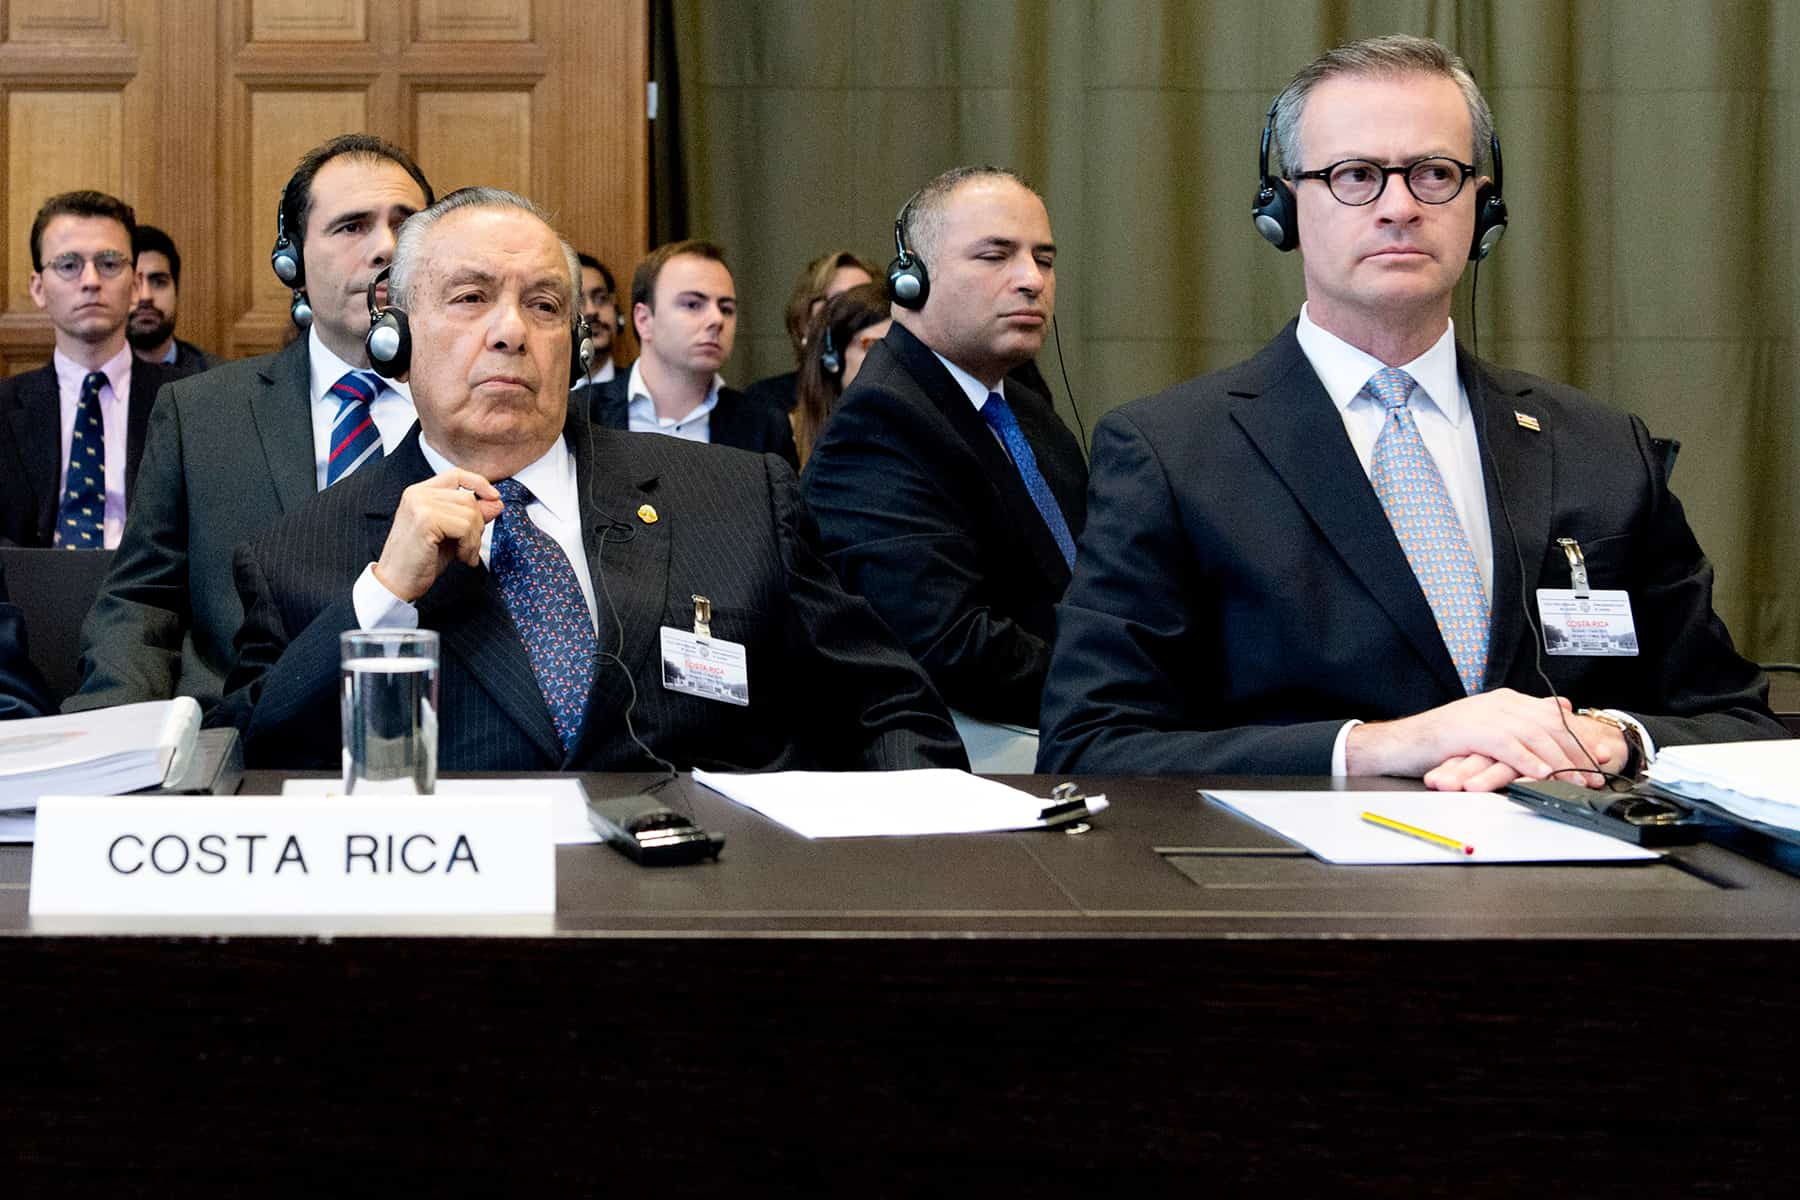 Costa Rica's representative before The Hague, Édgar Ugalde Álvarez (L), and Foreign Minister Manuel González Sánz (R) attend oral hearings at the International Court of Justice, April 21, 2015.